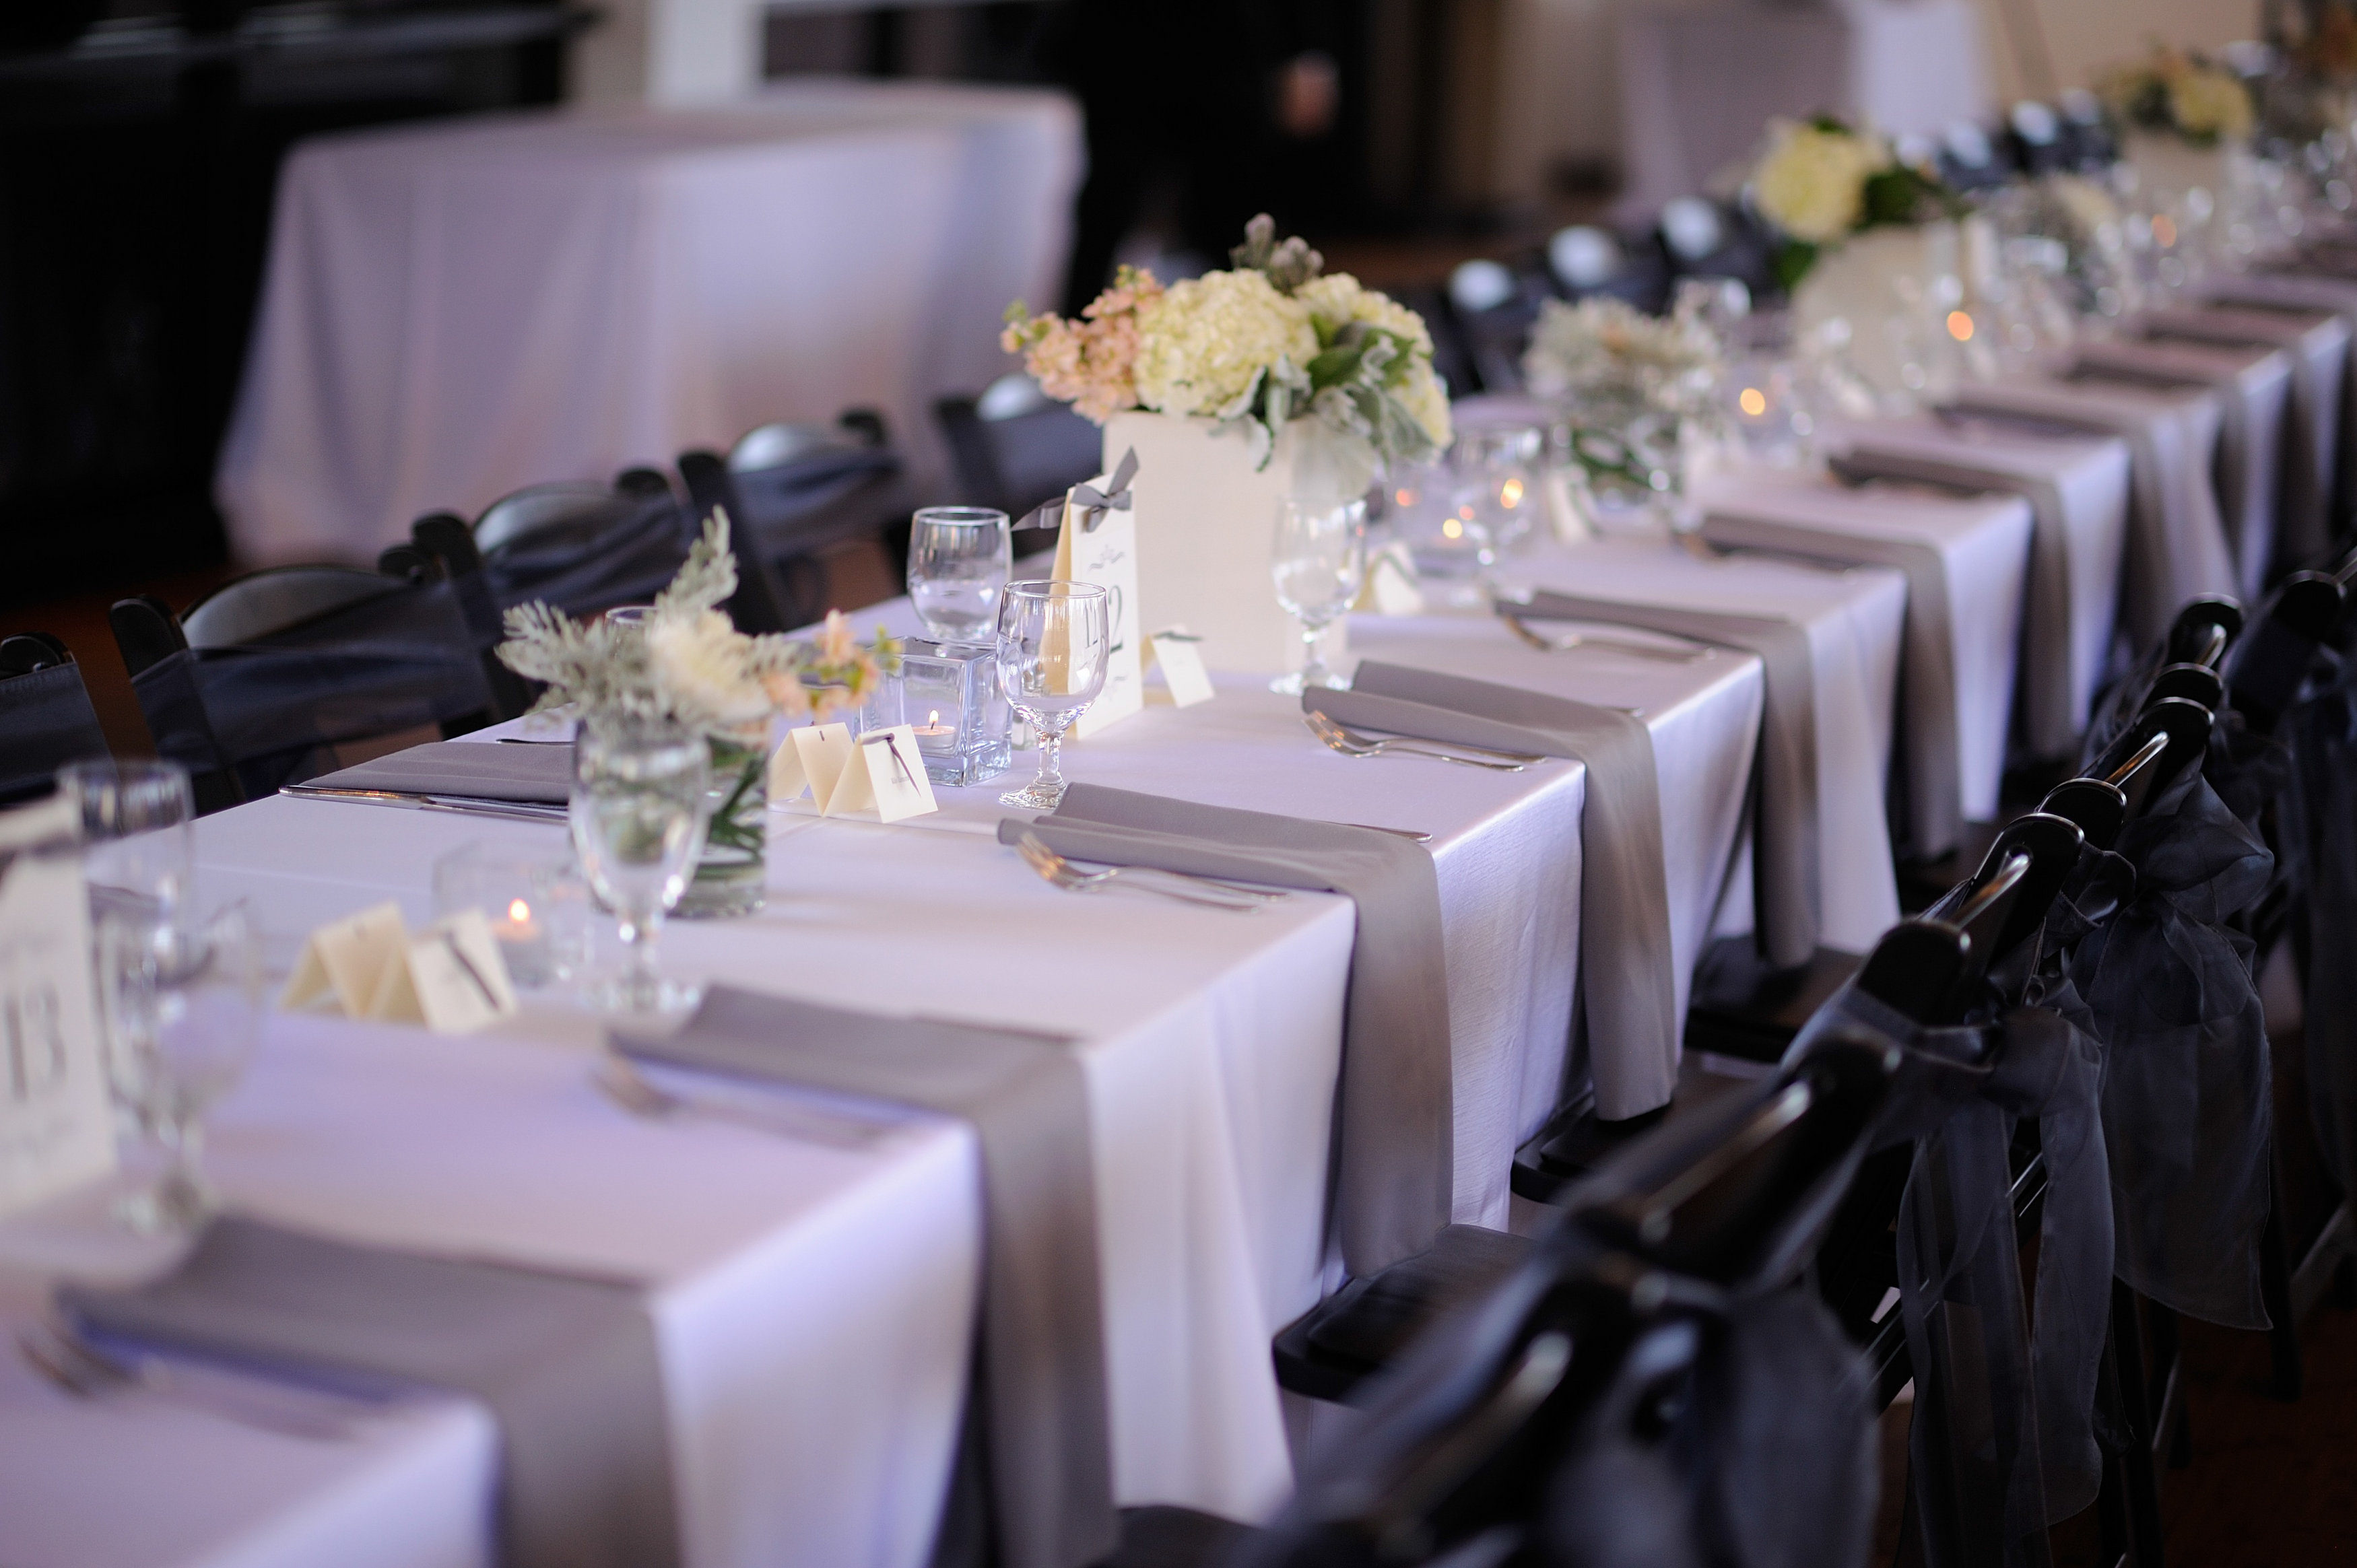 23 Feb Using A Wedding Planner What To Expect At Your First Consultation